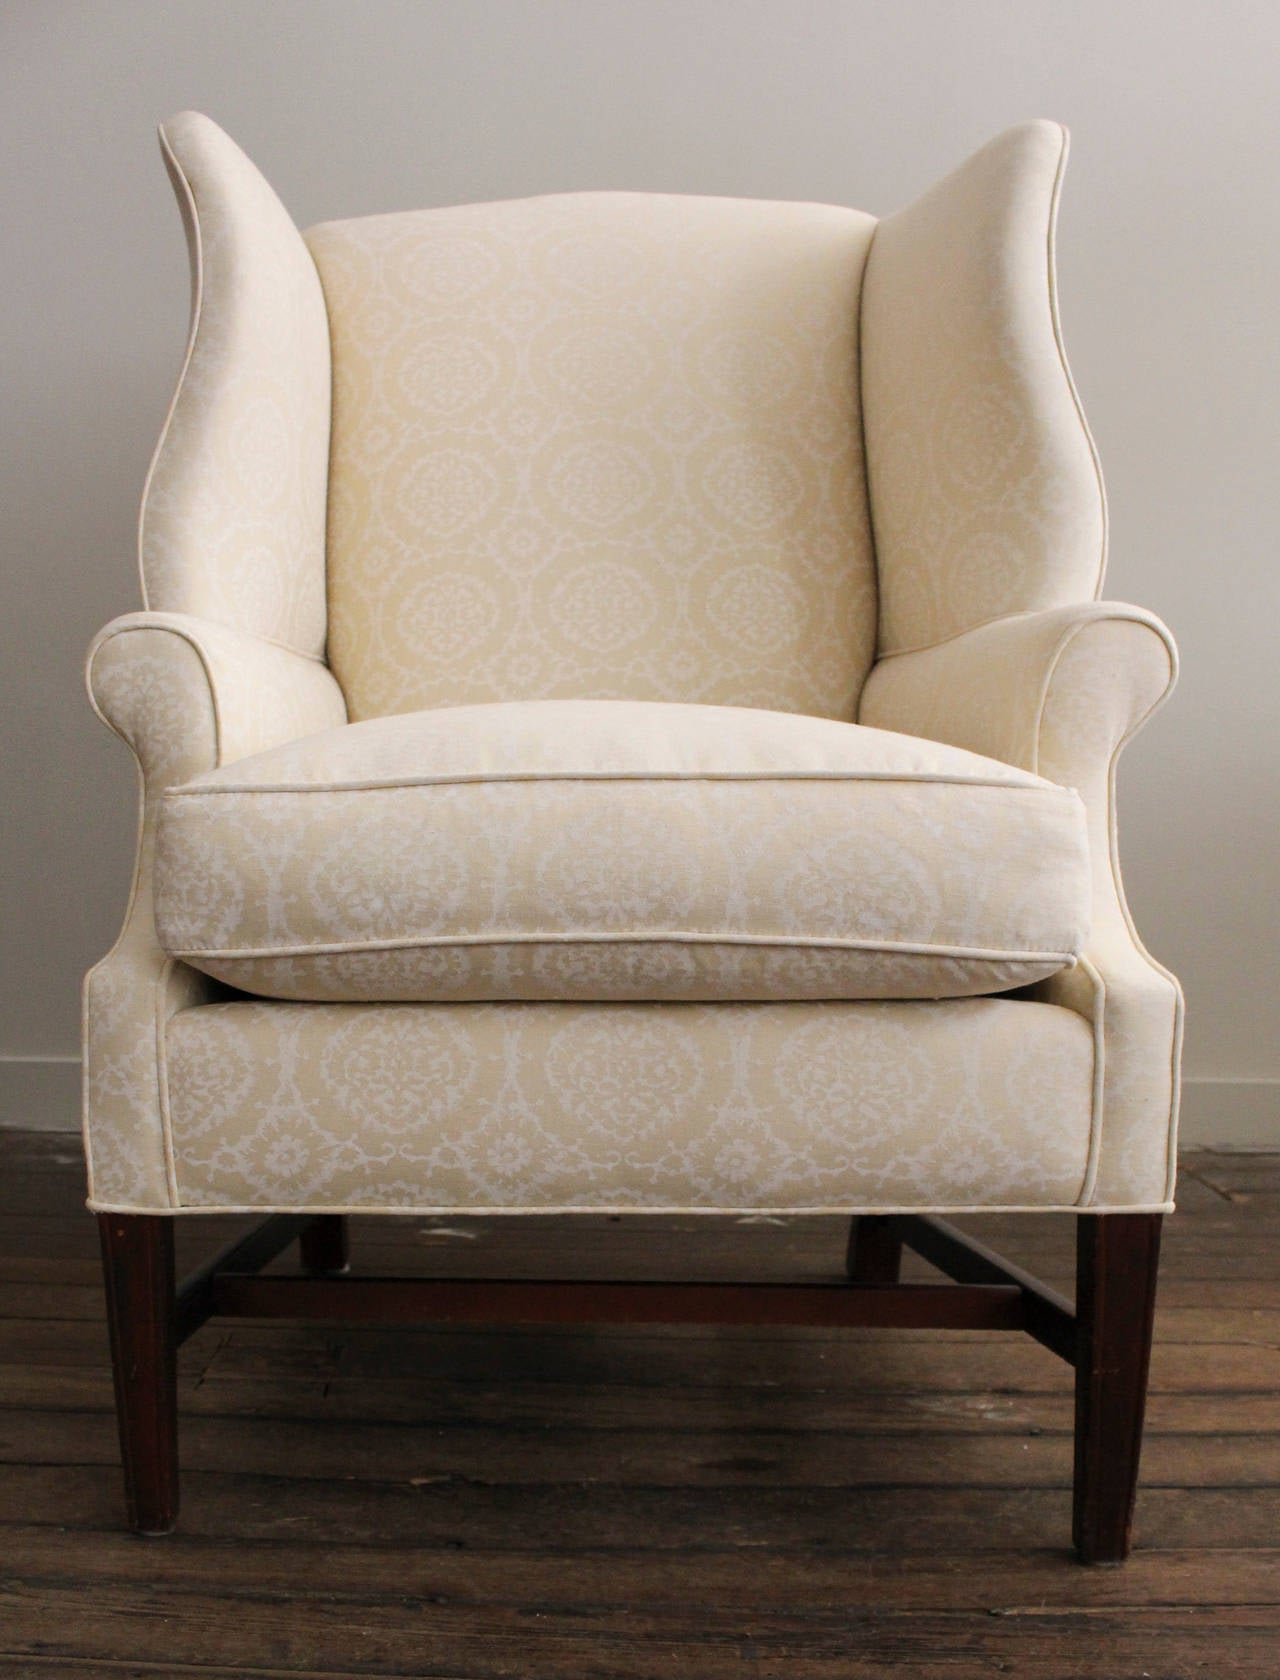 Retro Wing Chair Vintage 1940s Wingback Chair At 1stdibs